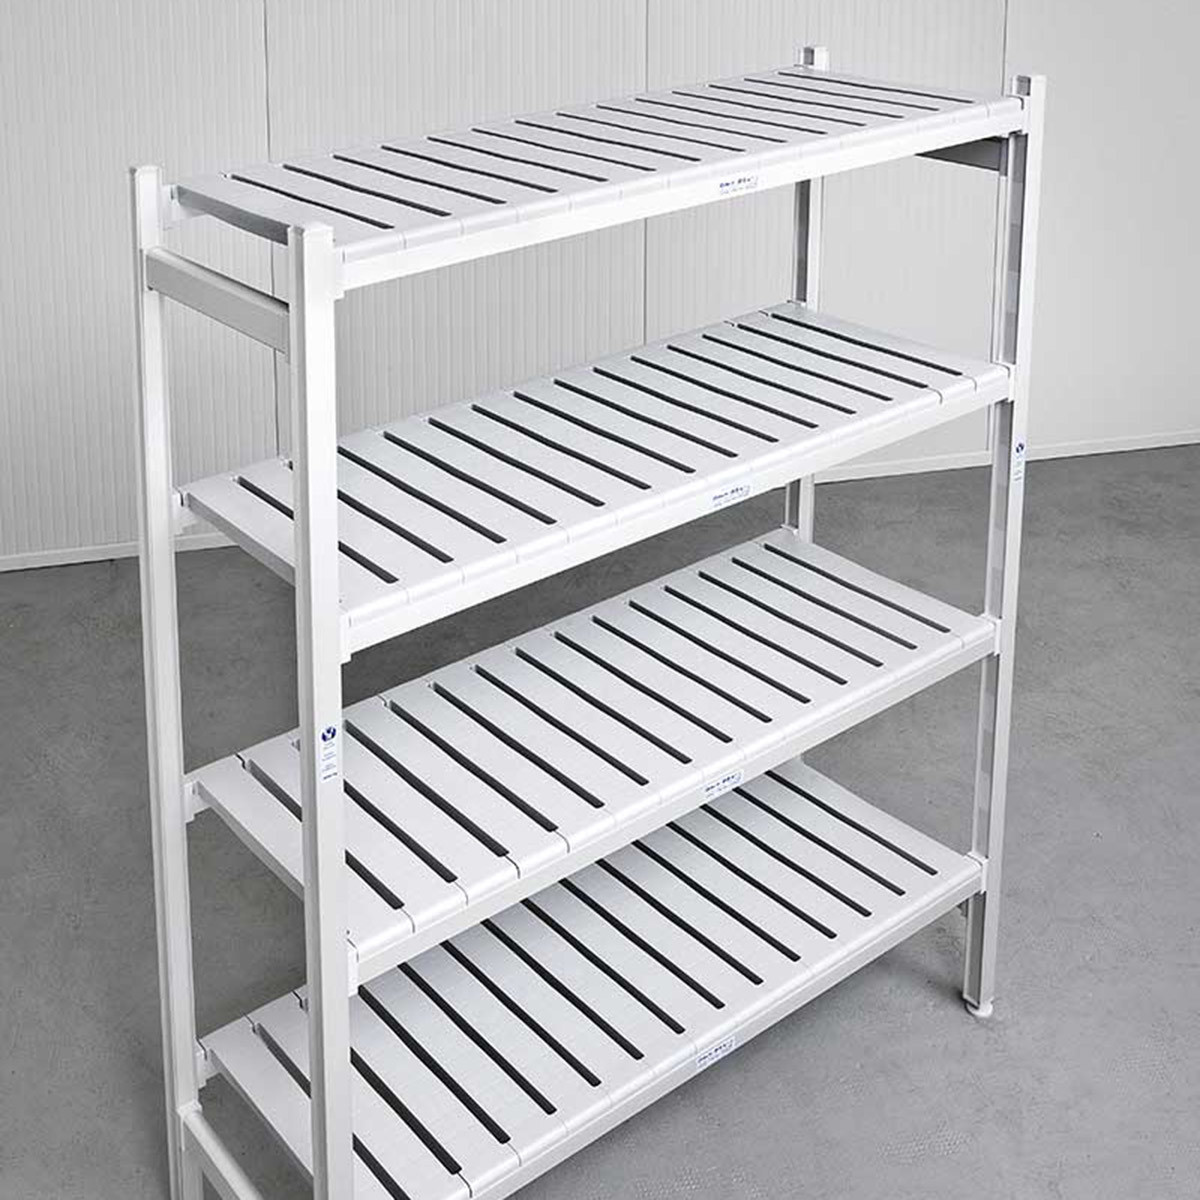 Modular shelving for cleanrooms